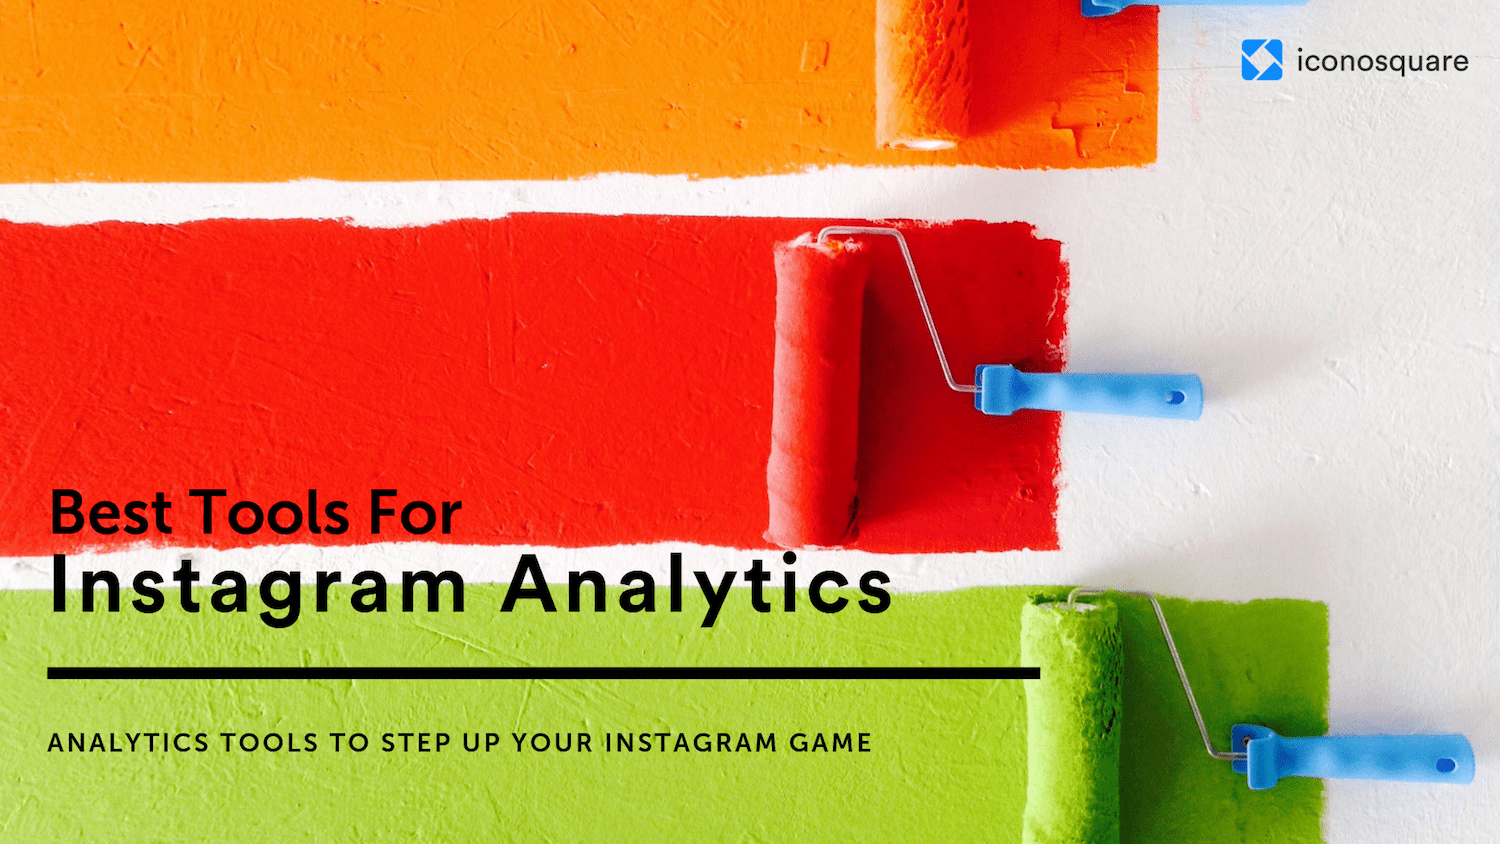 Instagram analytics tools to consider in 2019